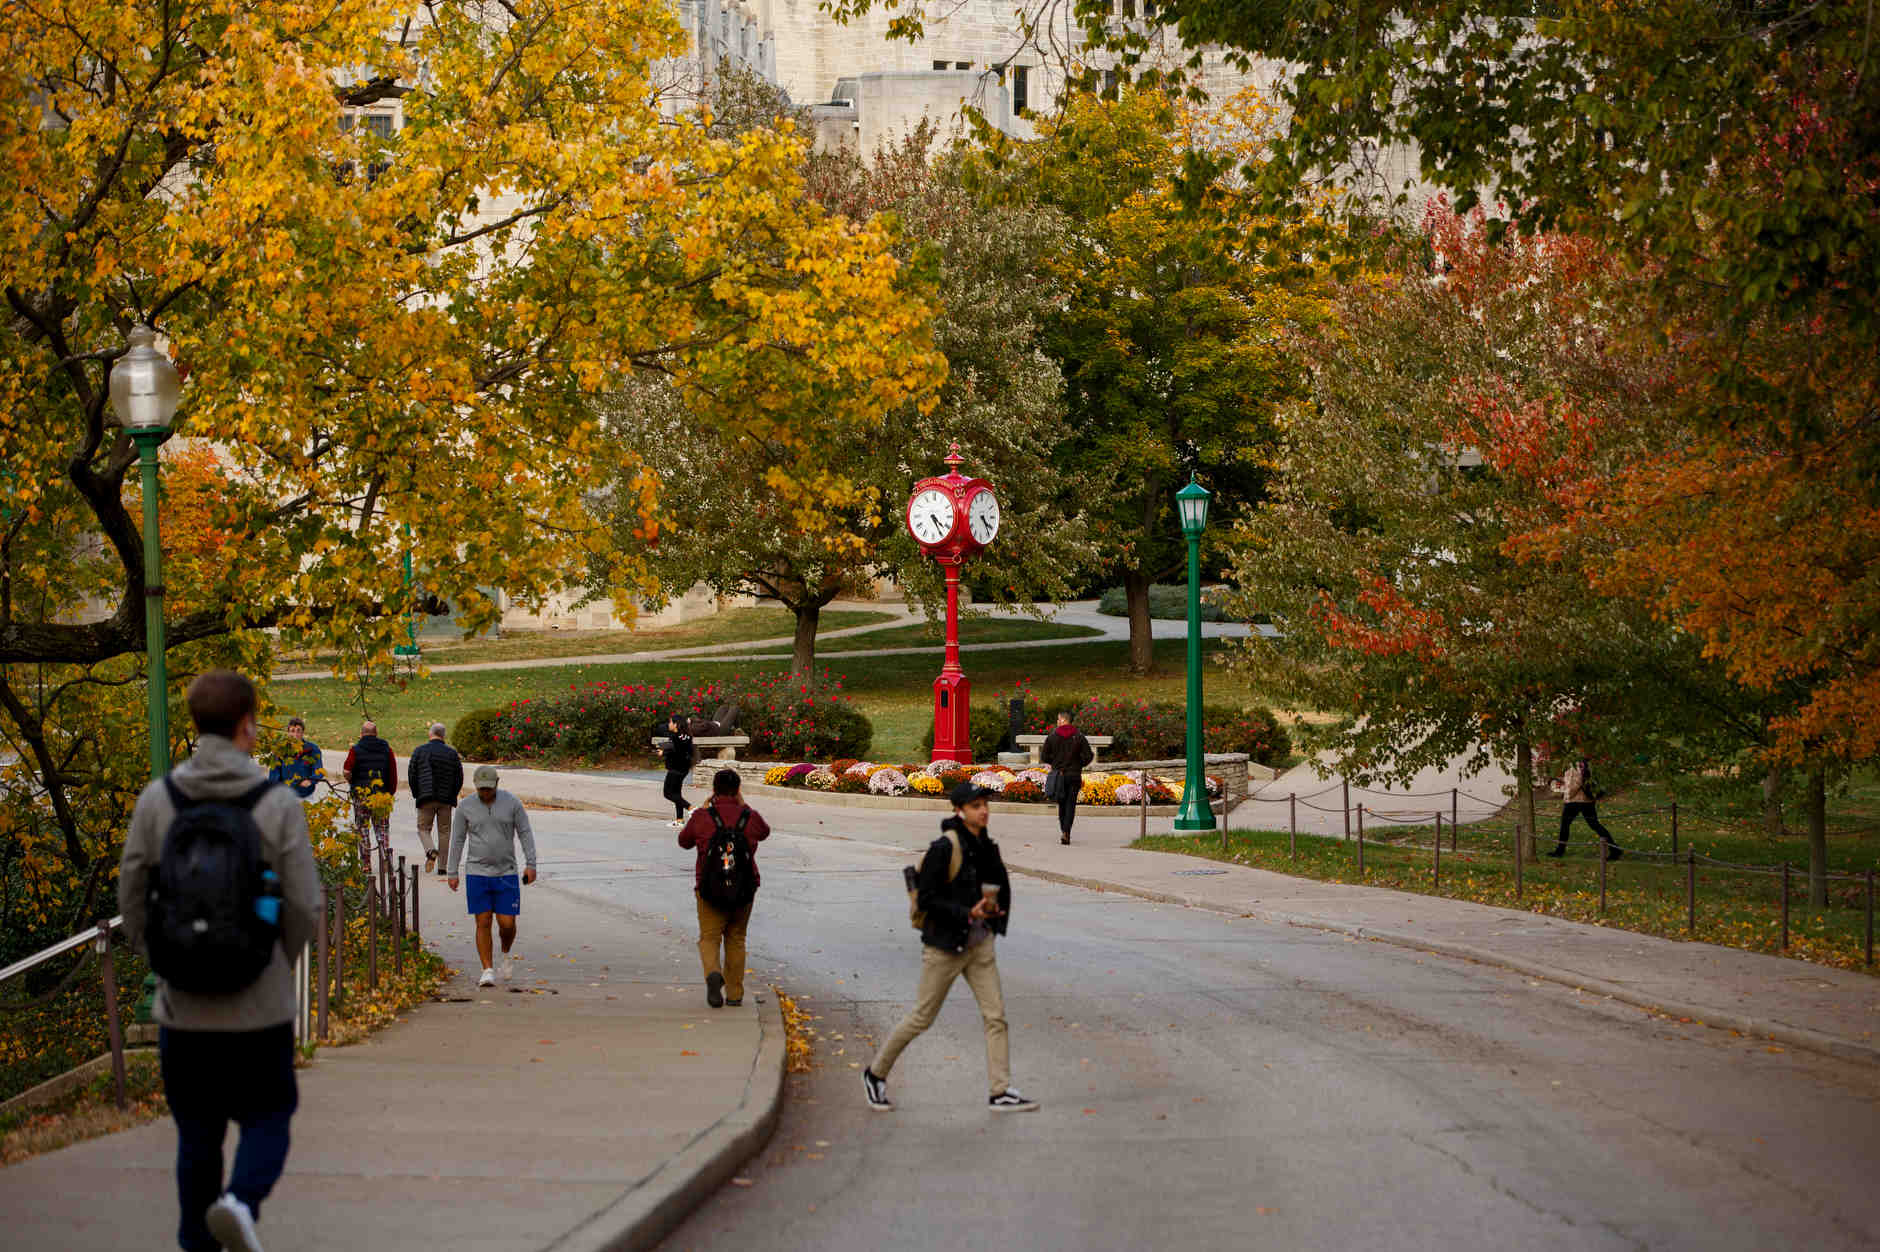 Students walk past one of IU's iconic red clocks near Woodburn Hall on a fall day at IU Bloomington on Tuesday, Oct. 22, 2019. (James Brosher/Indiana University)